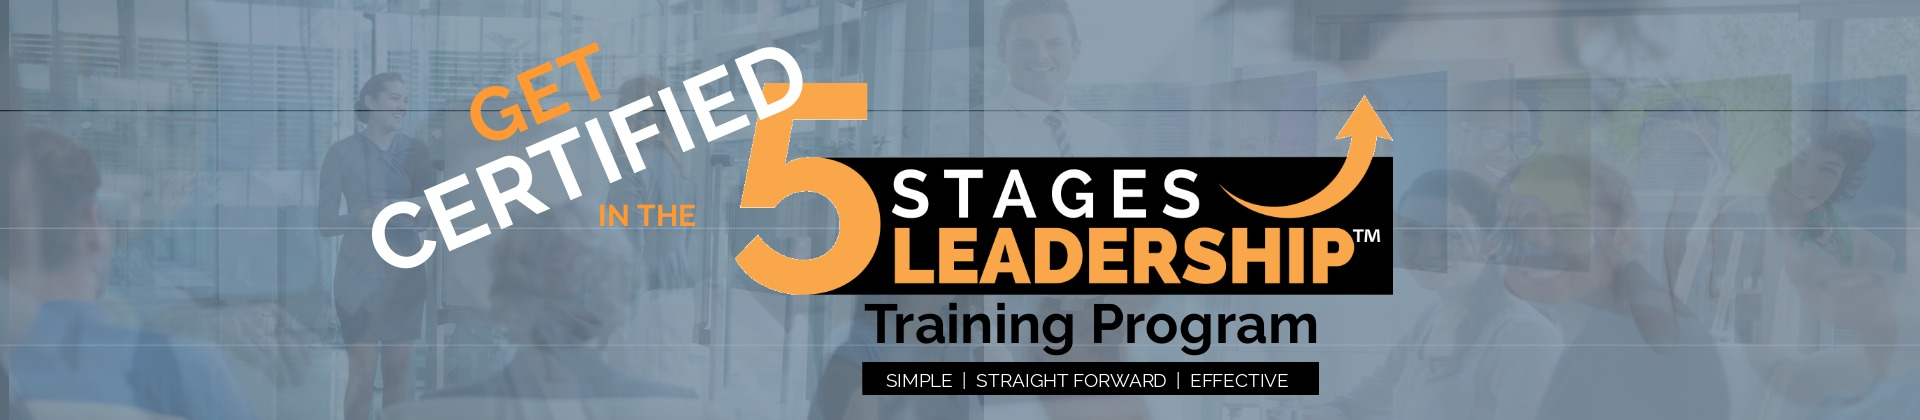 Get Certified for the 5 Stages Leadership™ Training Program